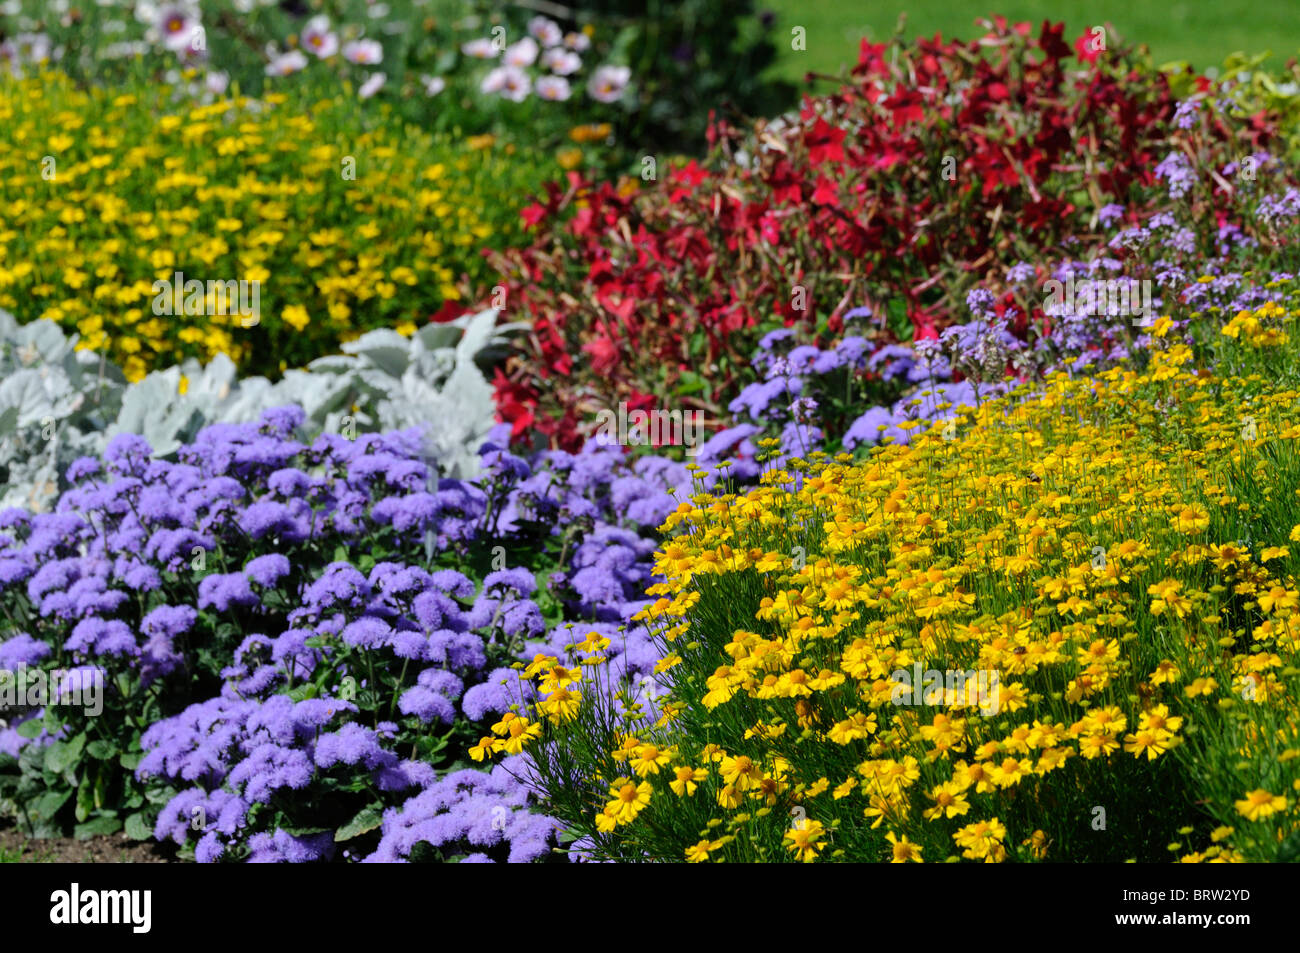 herbaceous perennial garden border mixed plants flowers blooms